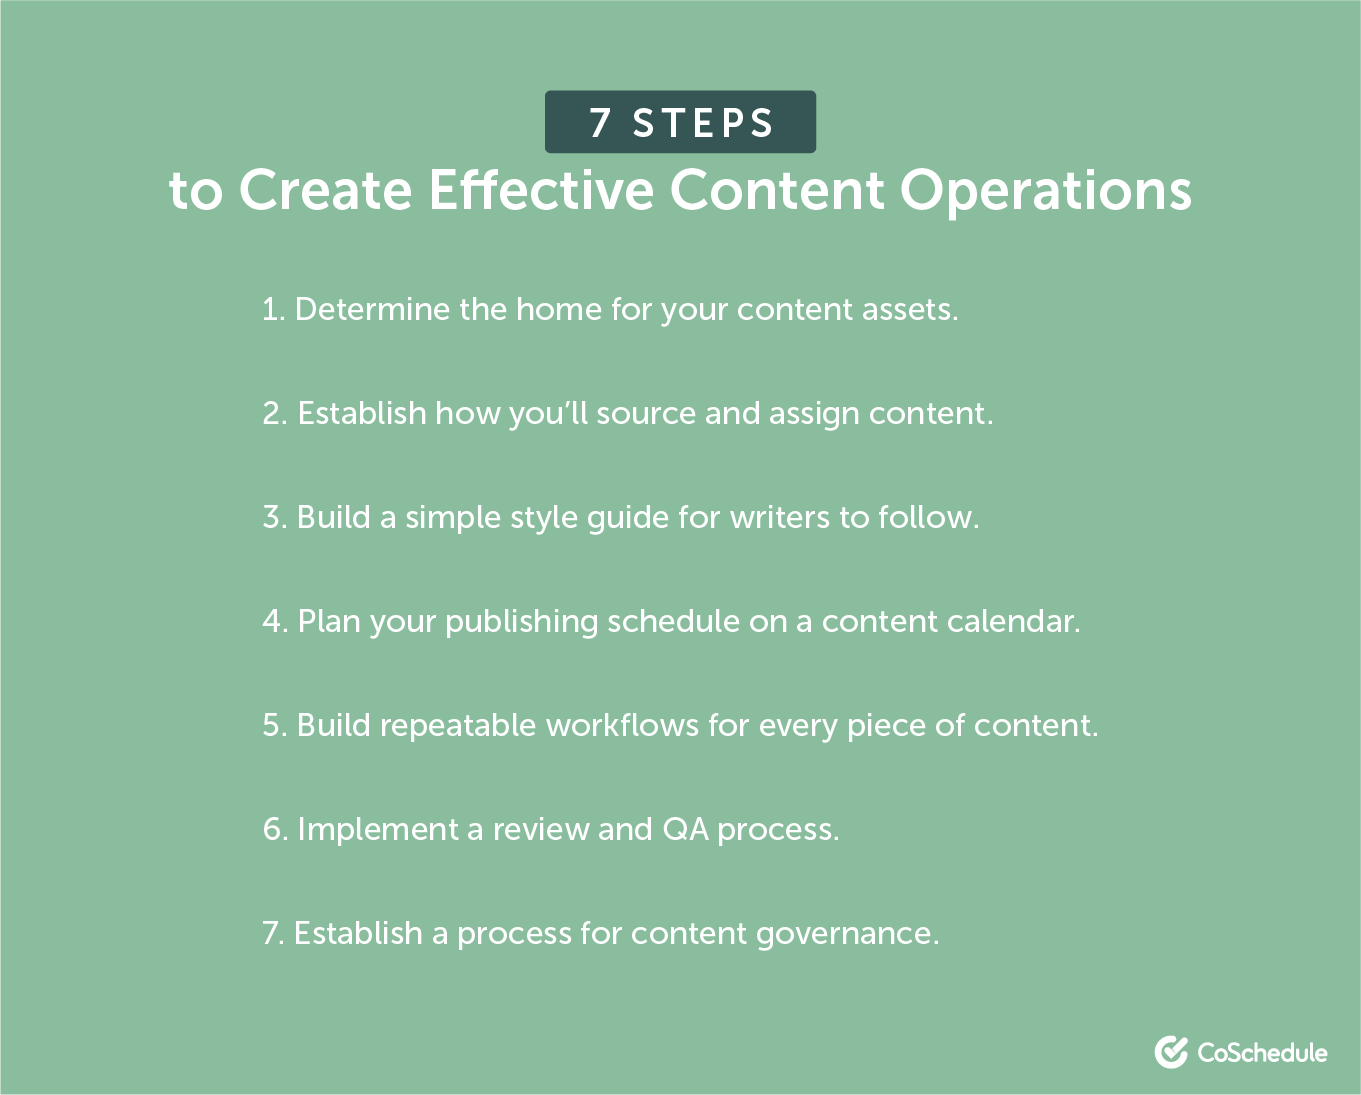 7 steps to create effective content operations